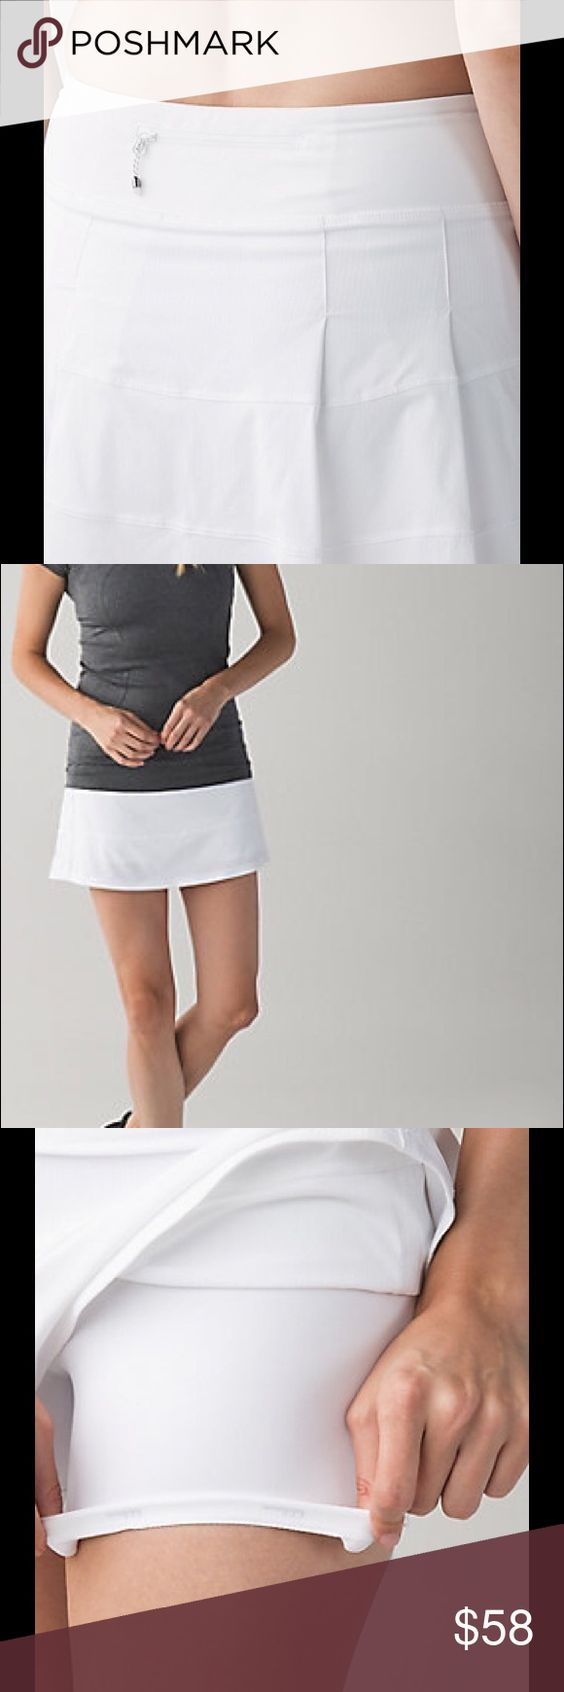 NWT Lululemon Pace Rival Skirt II *T Lululemon made this skirt to hit the trails or the court in this versatile, slim-fitting skirt.  Their signature three pocket waistband has room for all essentials. Medium Rise, Hugged sensation.  Colour:  White ~ Size 6, 8, 10 lululemon athletica Shorts